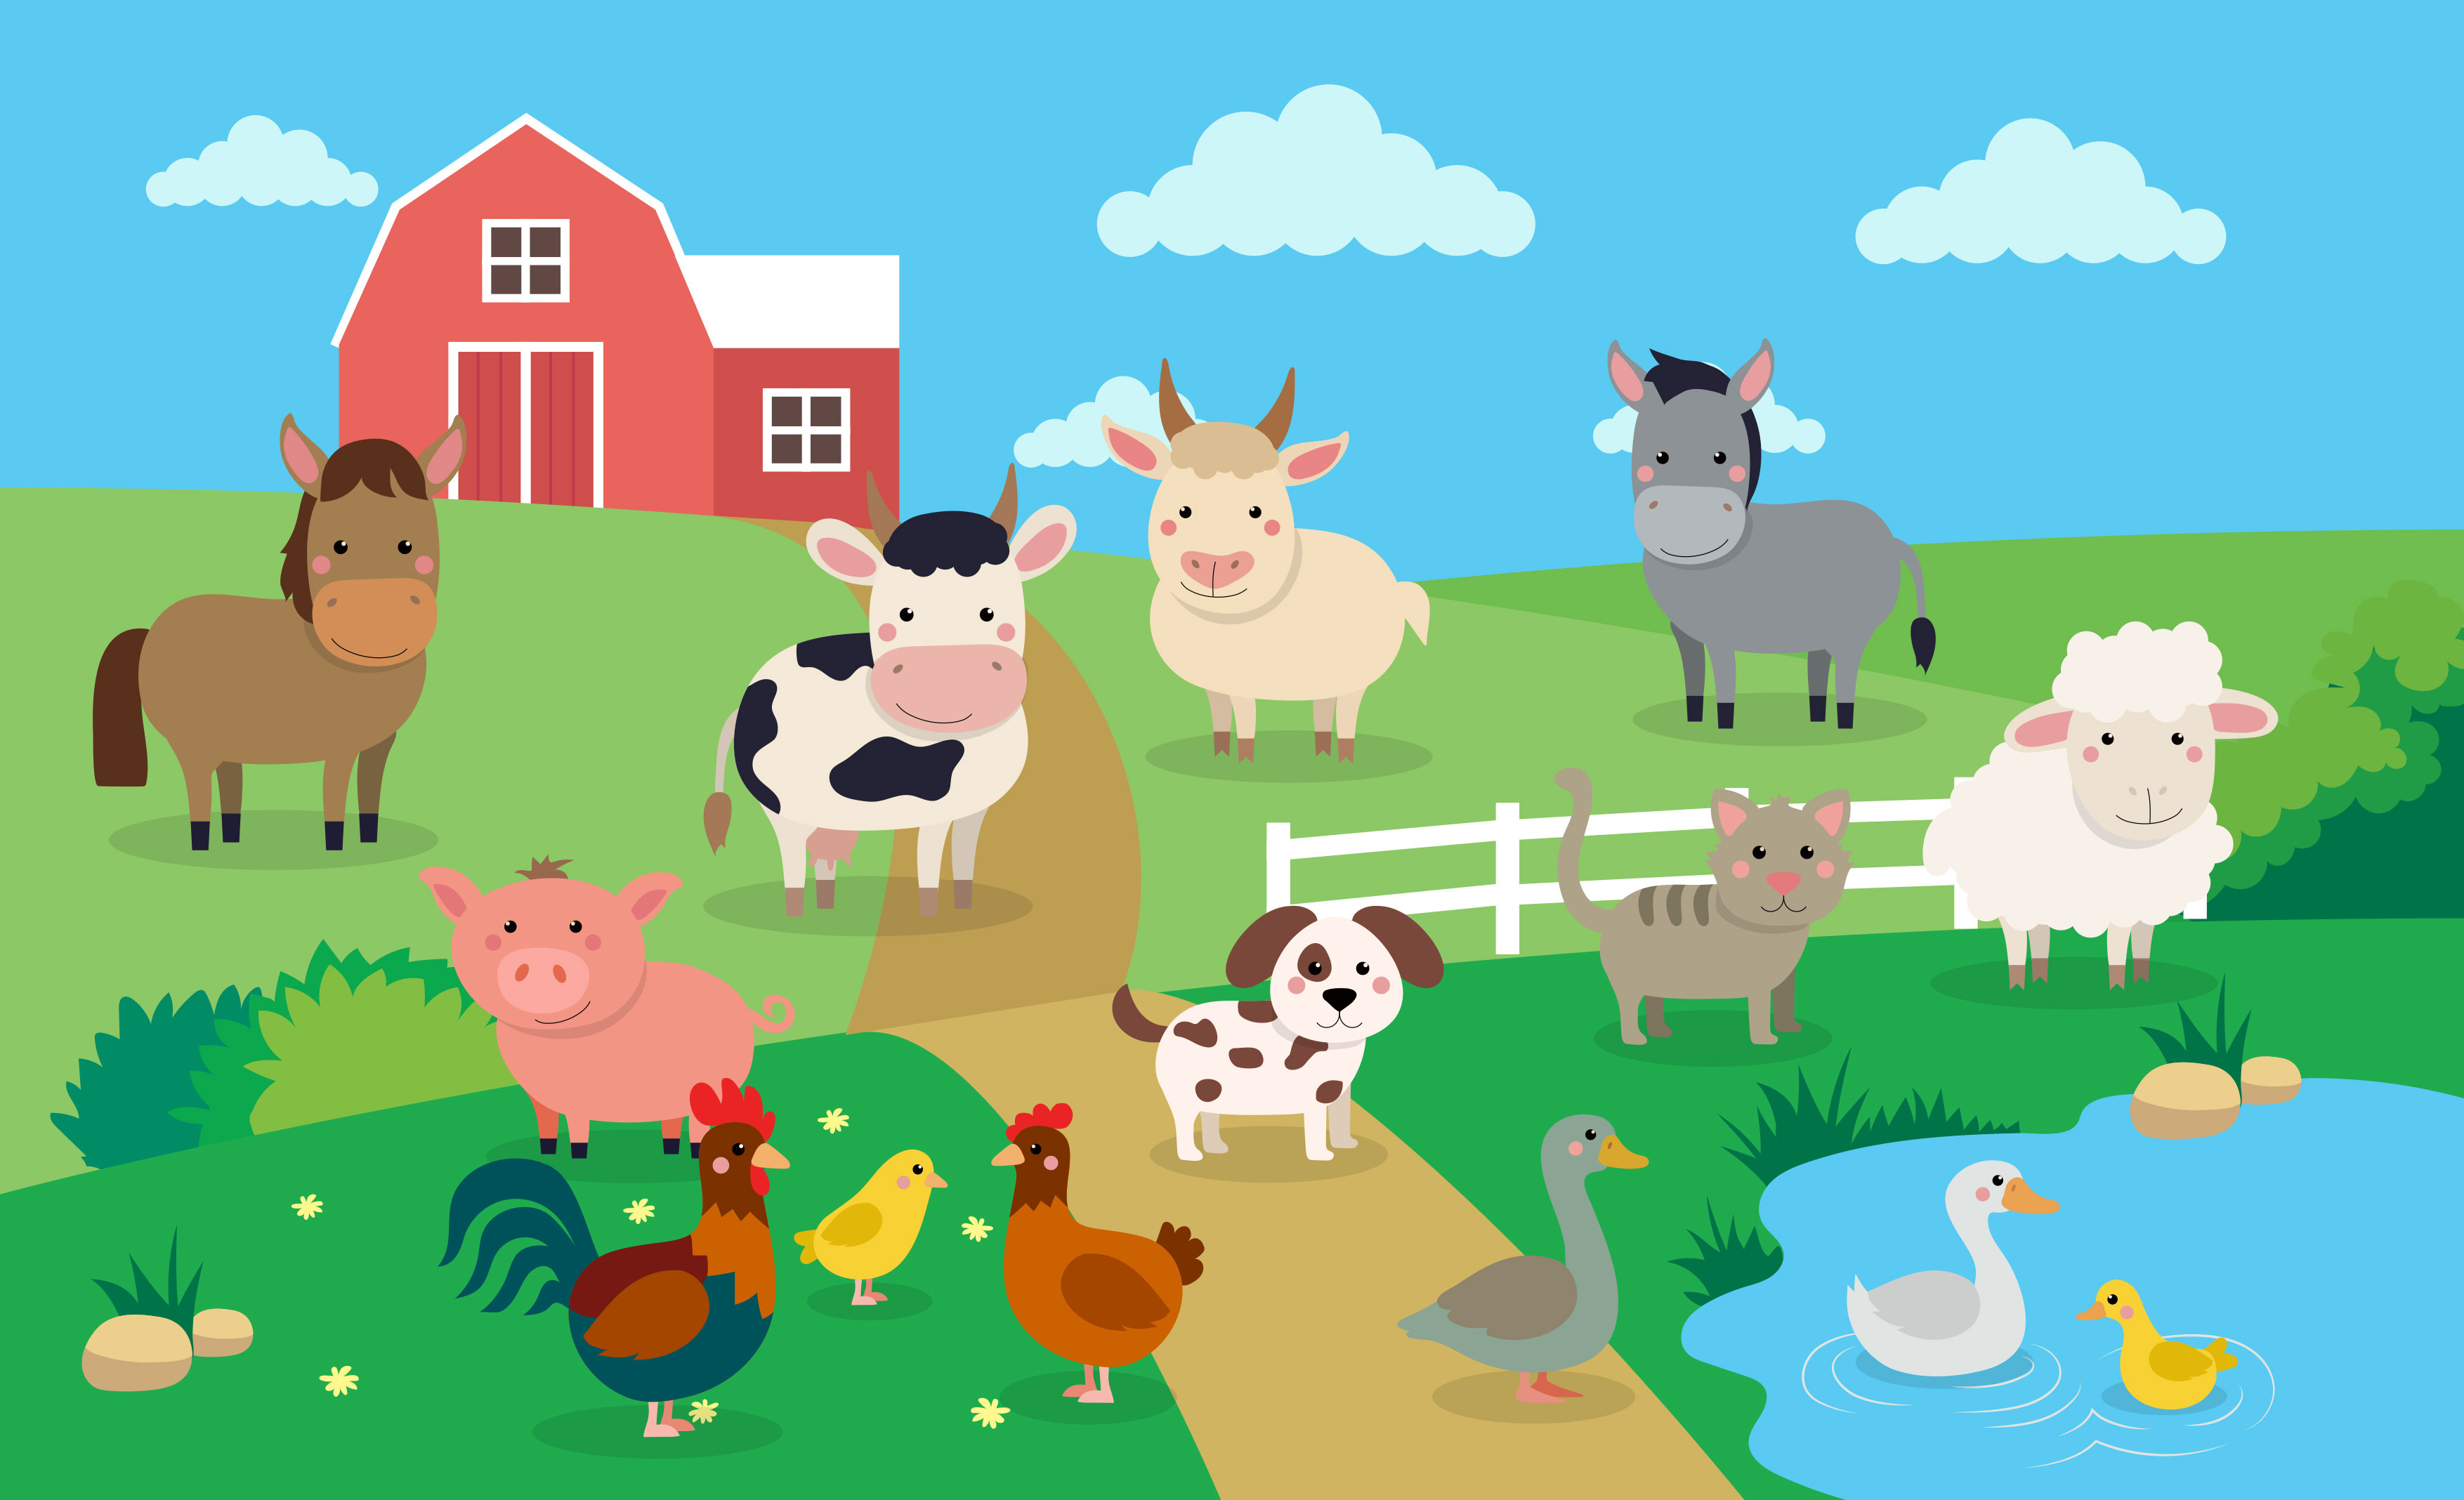 Song: Old MacDonald had a Farm - Storynory